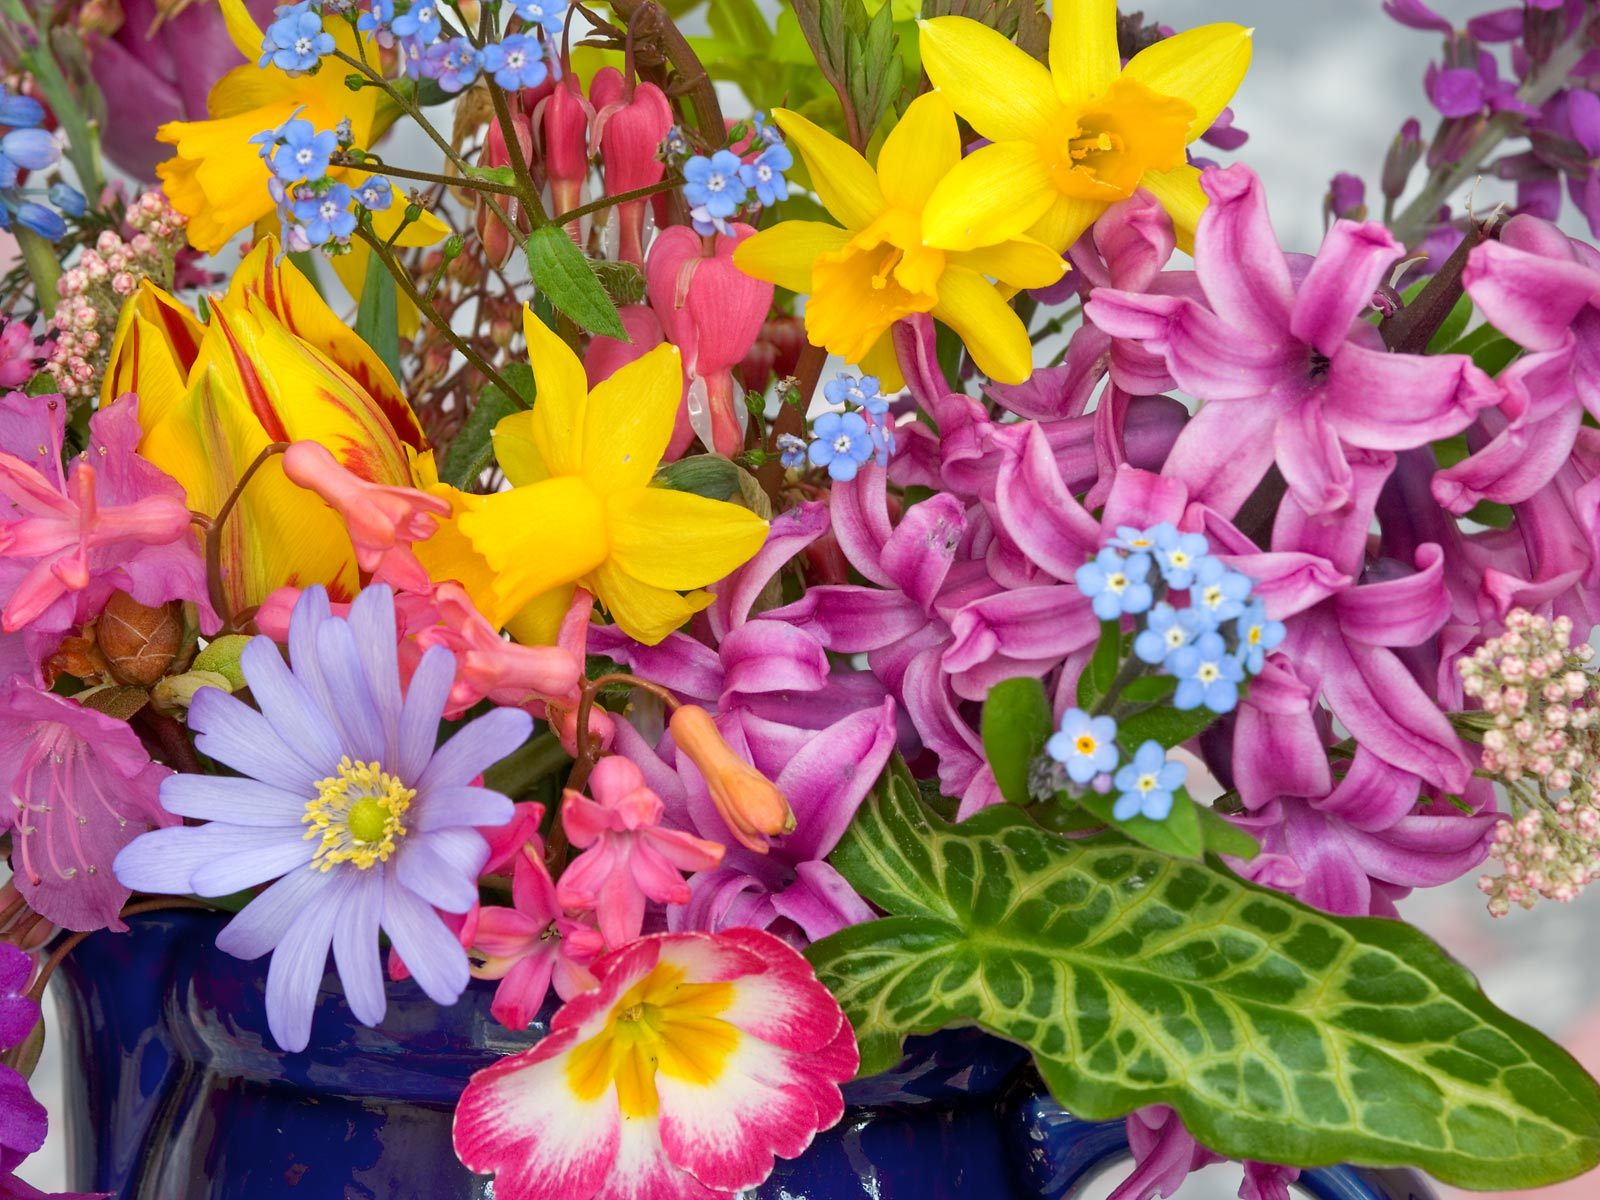 Wallpaper spring flowers background hd pic wpb00422 wallpaper download mightylinksfo